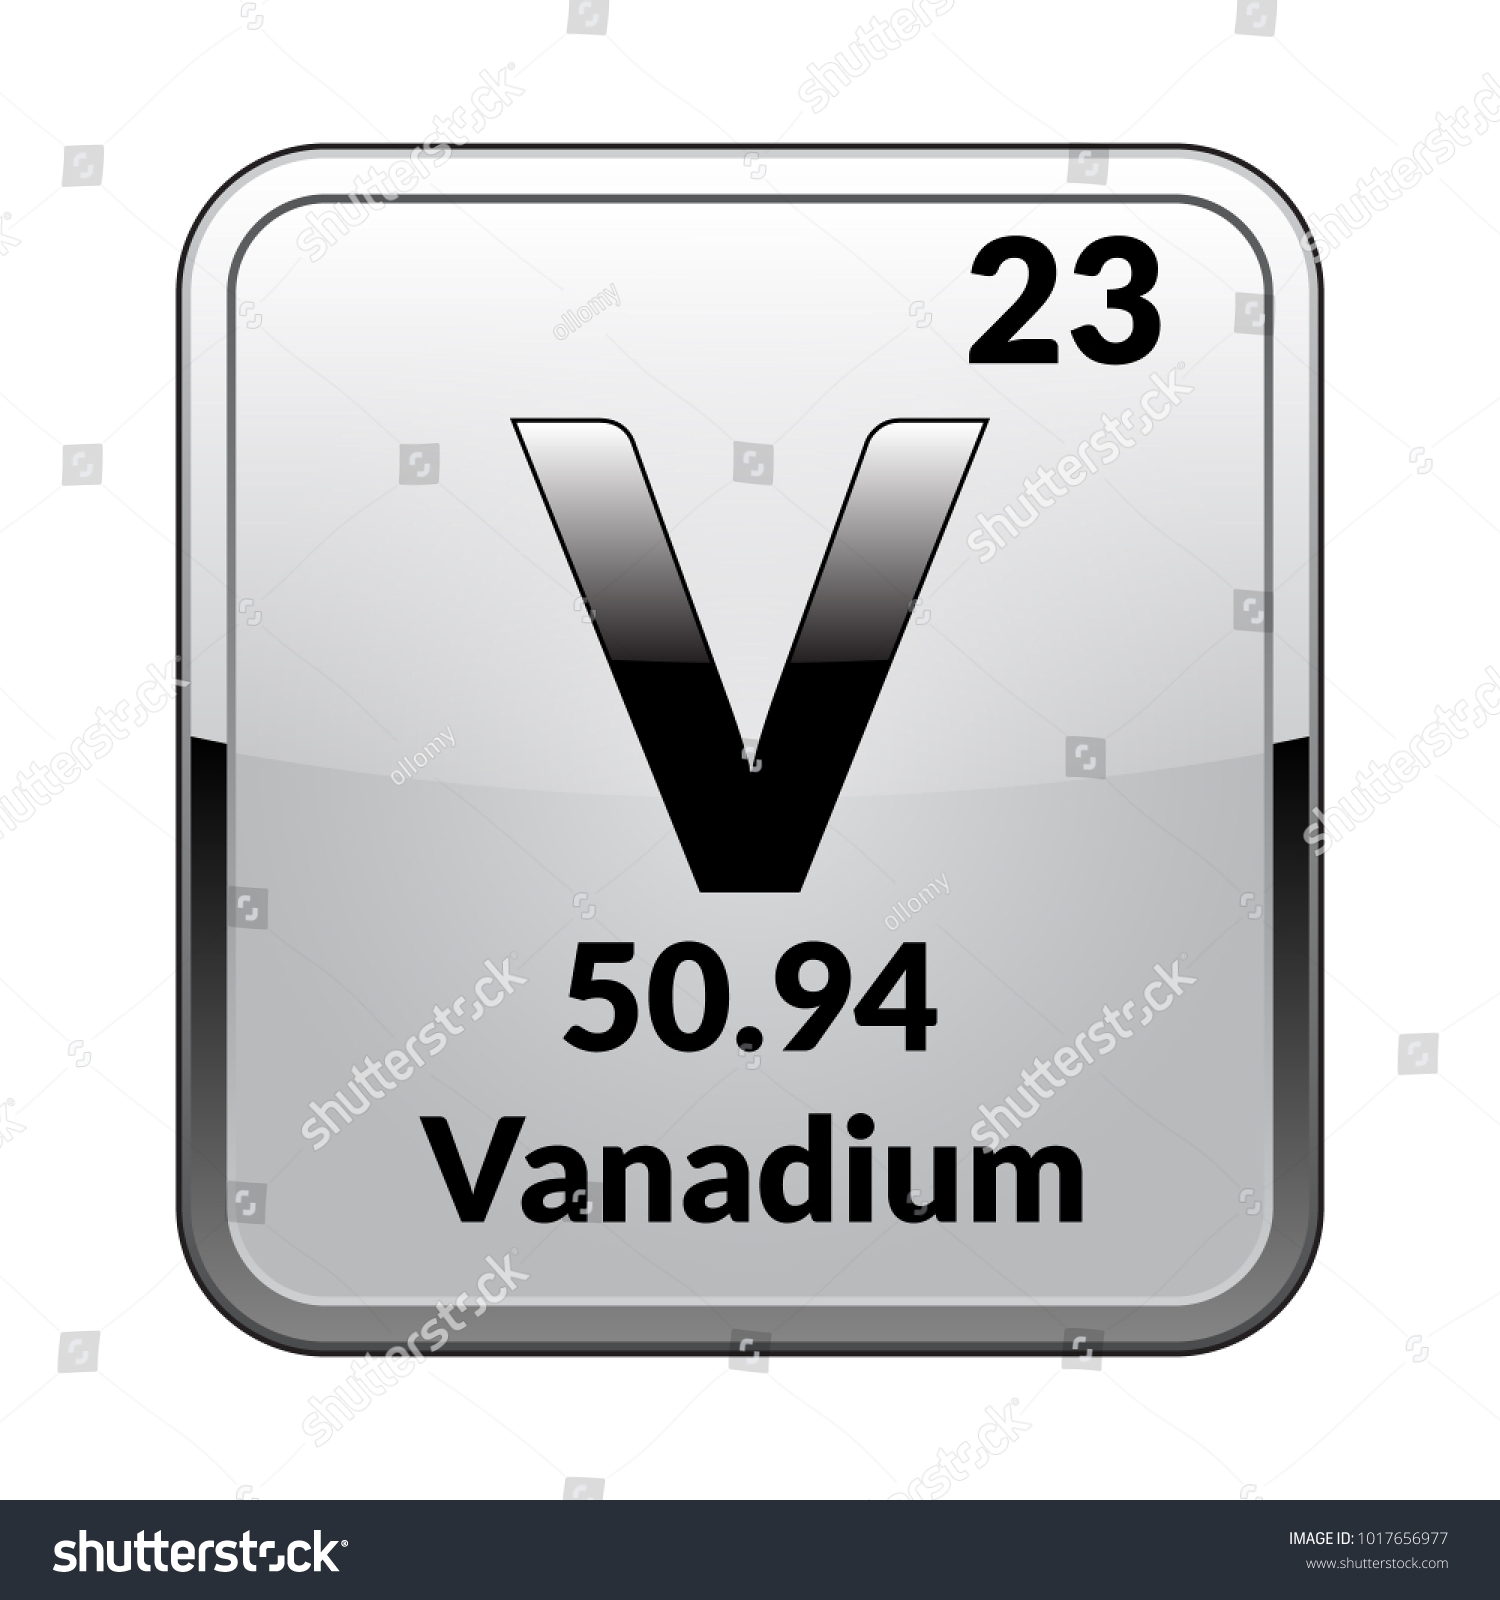 Vanadium symbolchemical element periodic table on stock vector vanadium symbolemical element of the periodic table on a glossy white background in a biocorpaavc Gallery